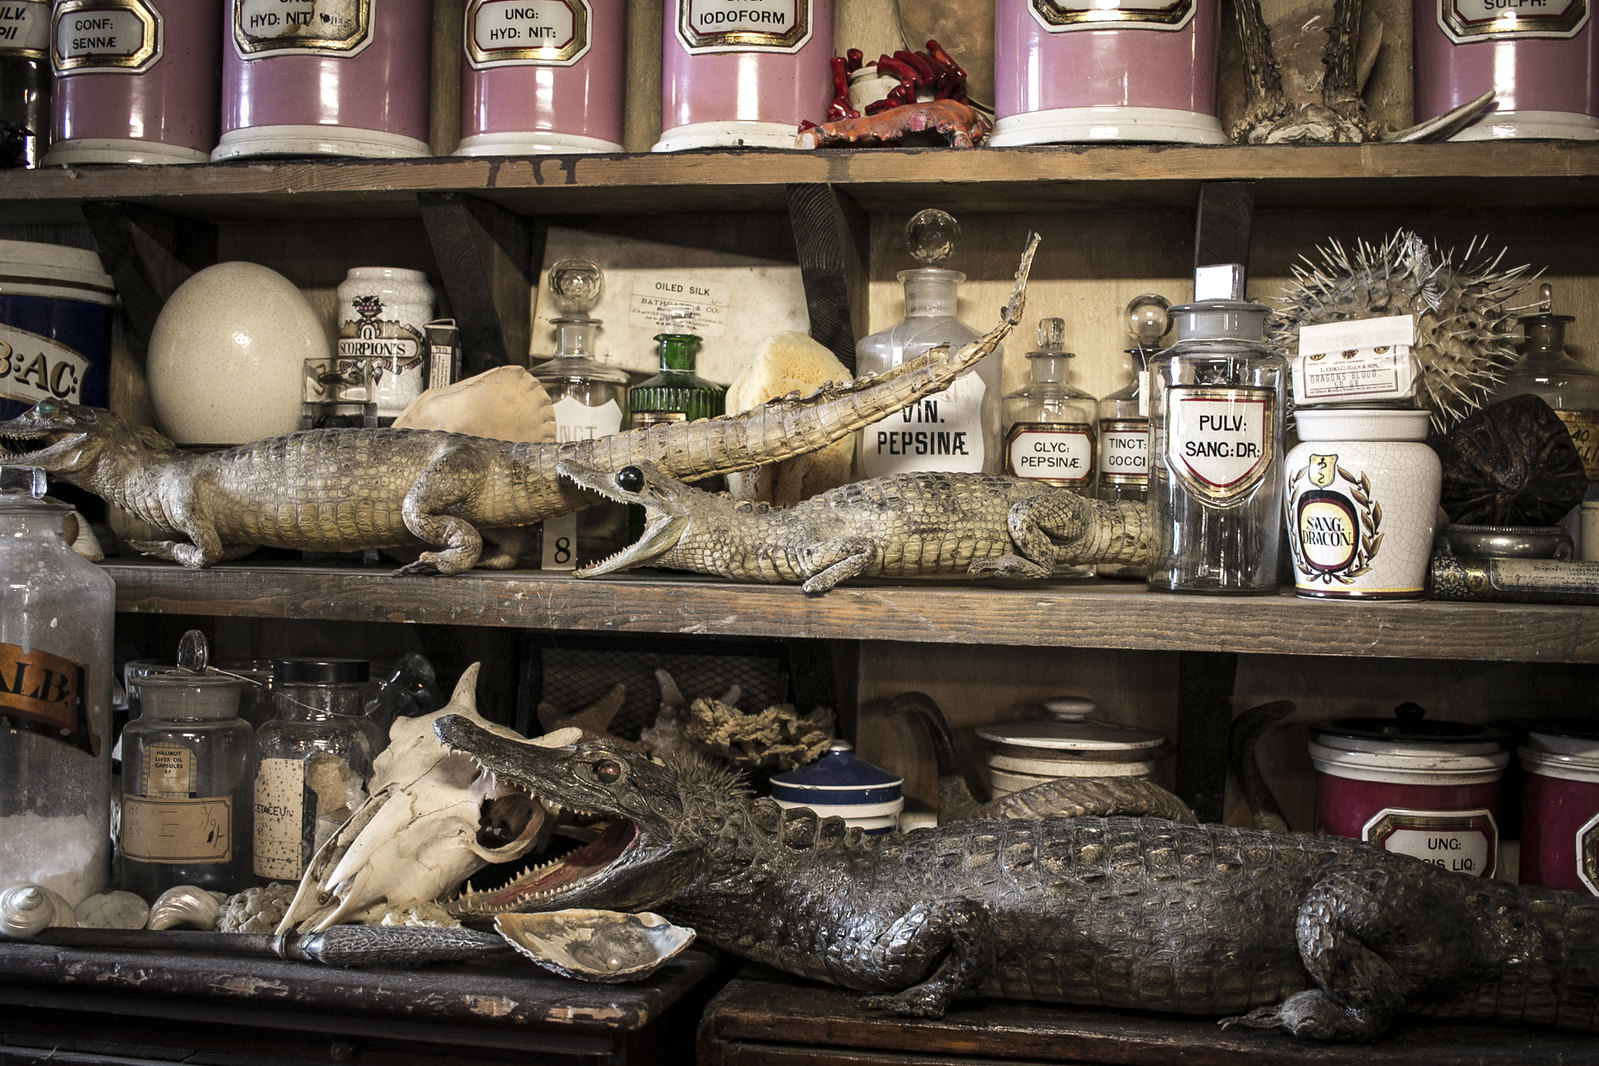 the old operating theatre, cabinet of curiosities, taxidermy